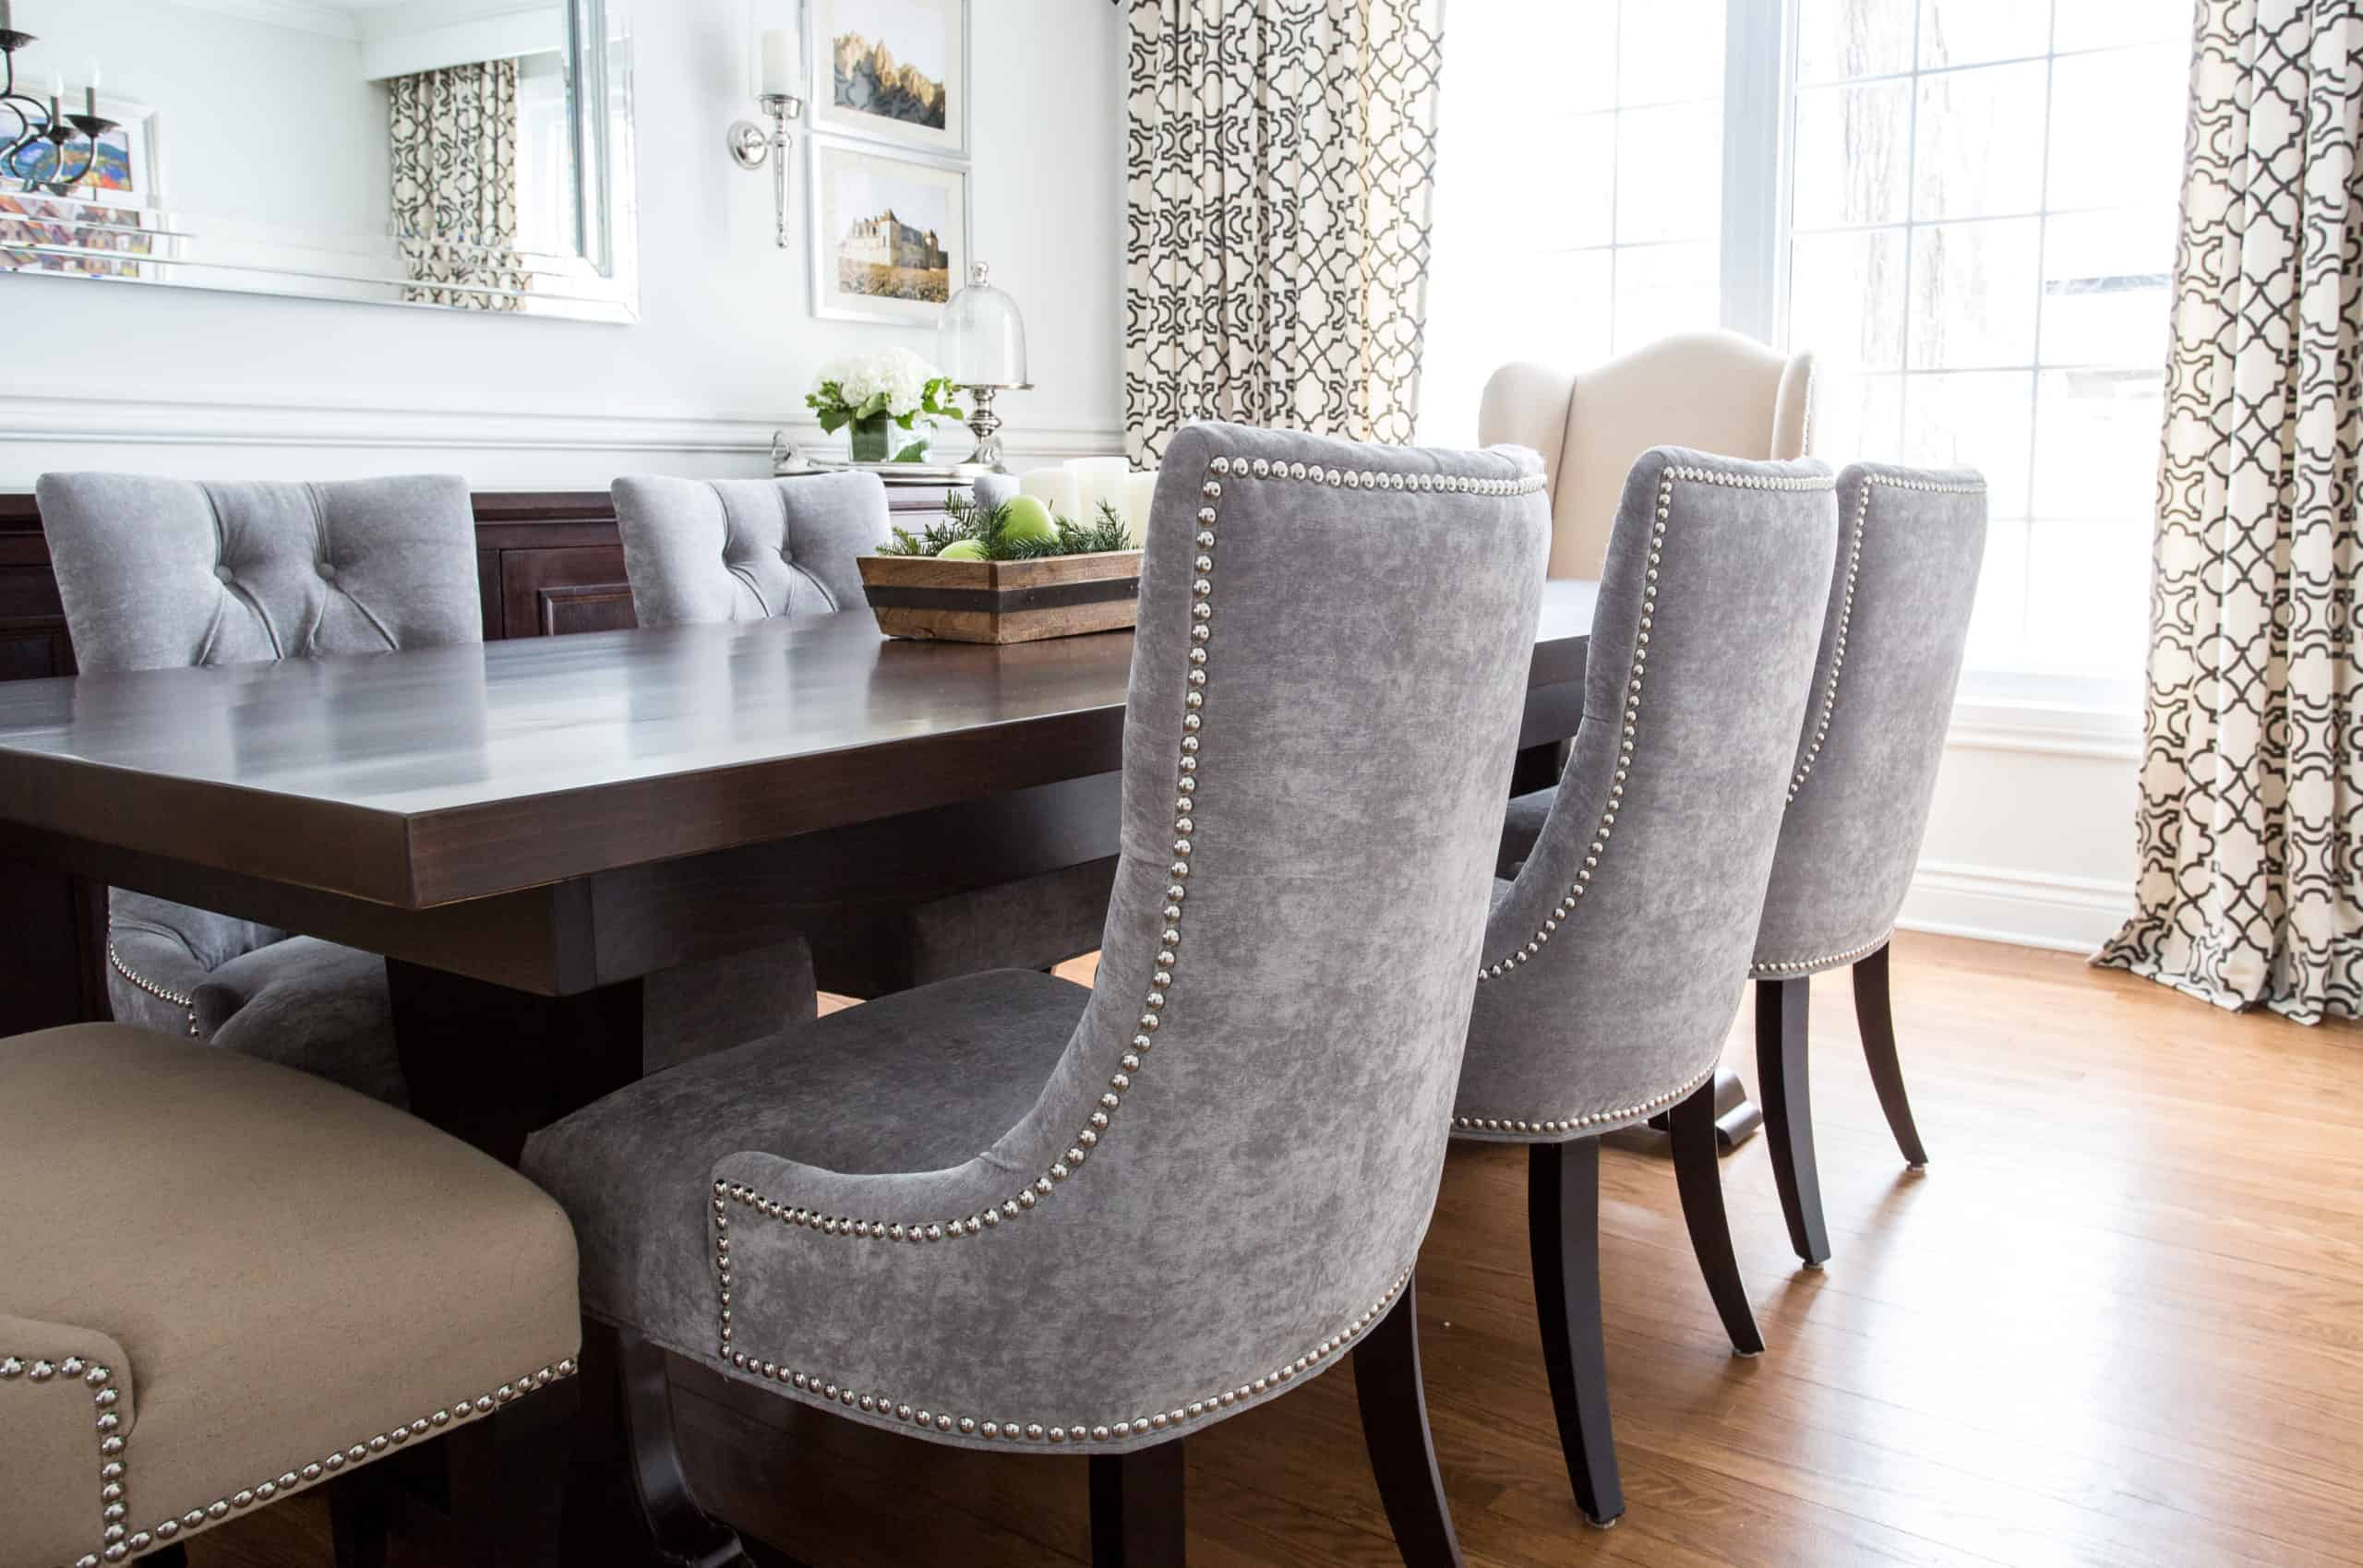 Gray chairs inside a modern living room